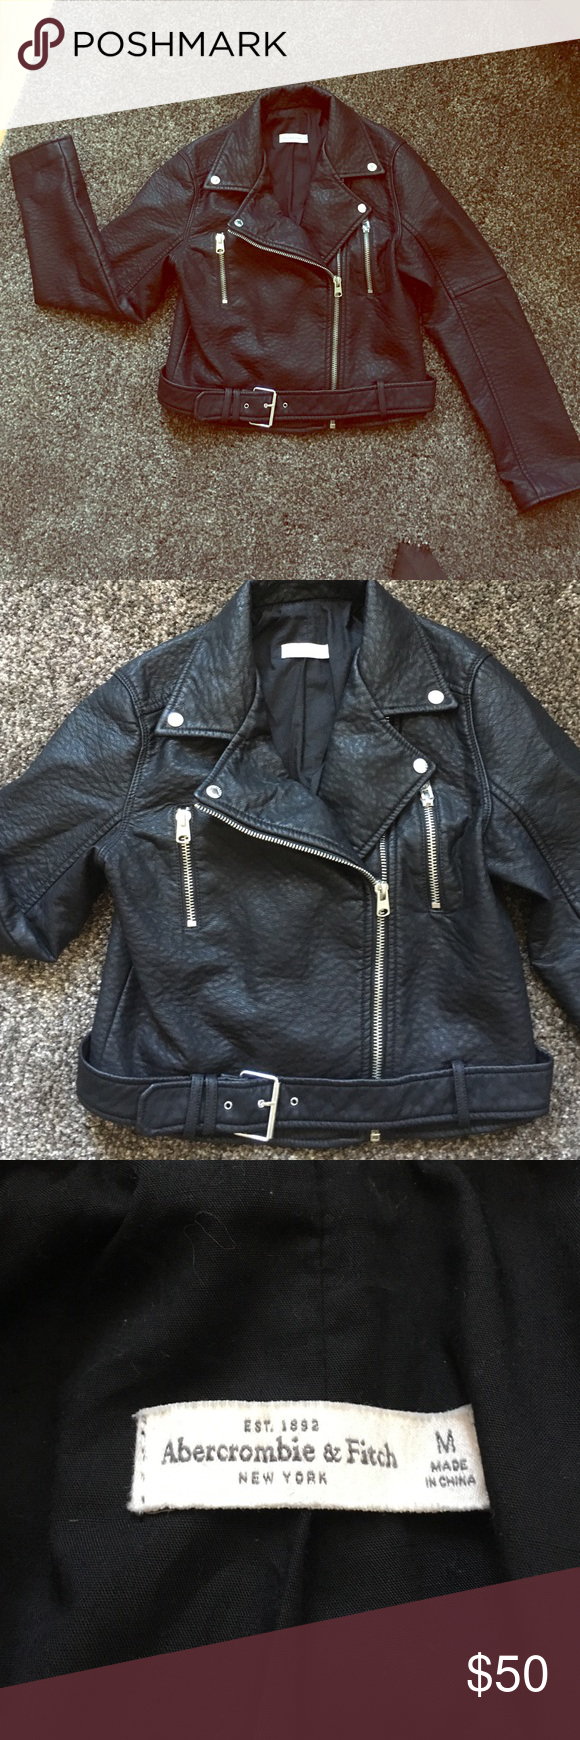 Motorcycle Leather Jacket Abercrombie & Fitch Sz M Gorgeous leather jacket! Only worn once. Faux leather. Does not feel cheap!!! Very well made and has some weight to it. Too big for me or I would keep it. Silver zippers and detailing! Size Medium. Purchased from Abercrombie & Fitch. Abercrombie & Fitch Jackets & Coats